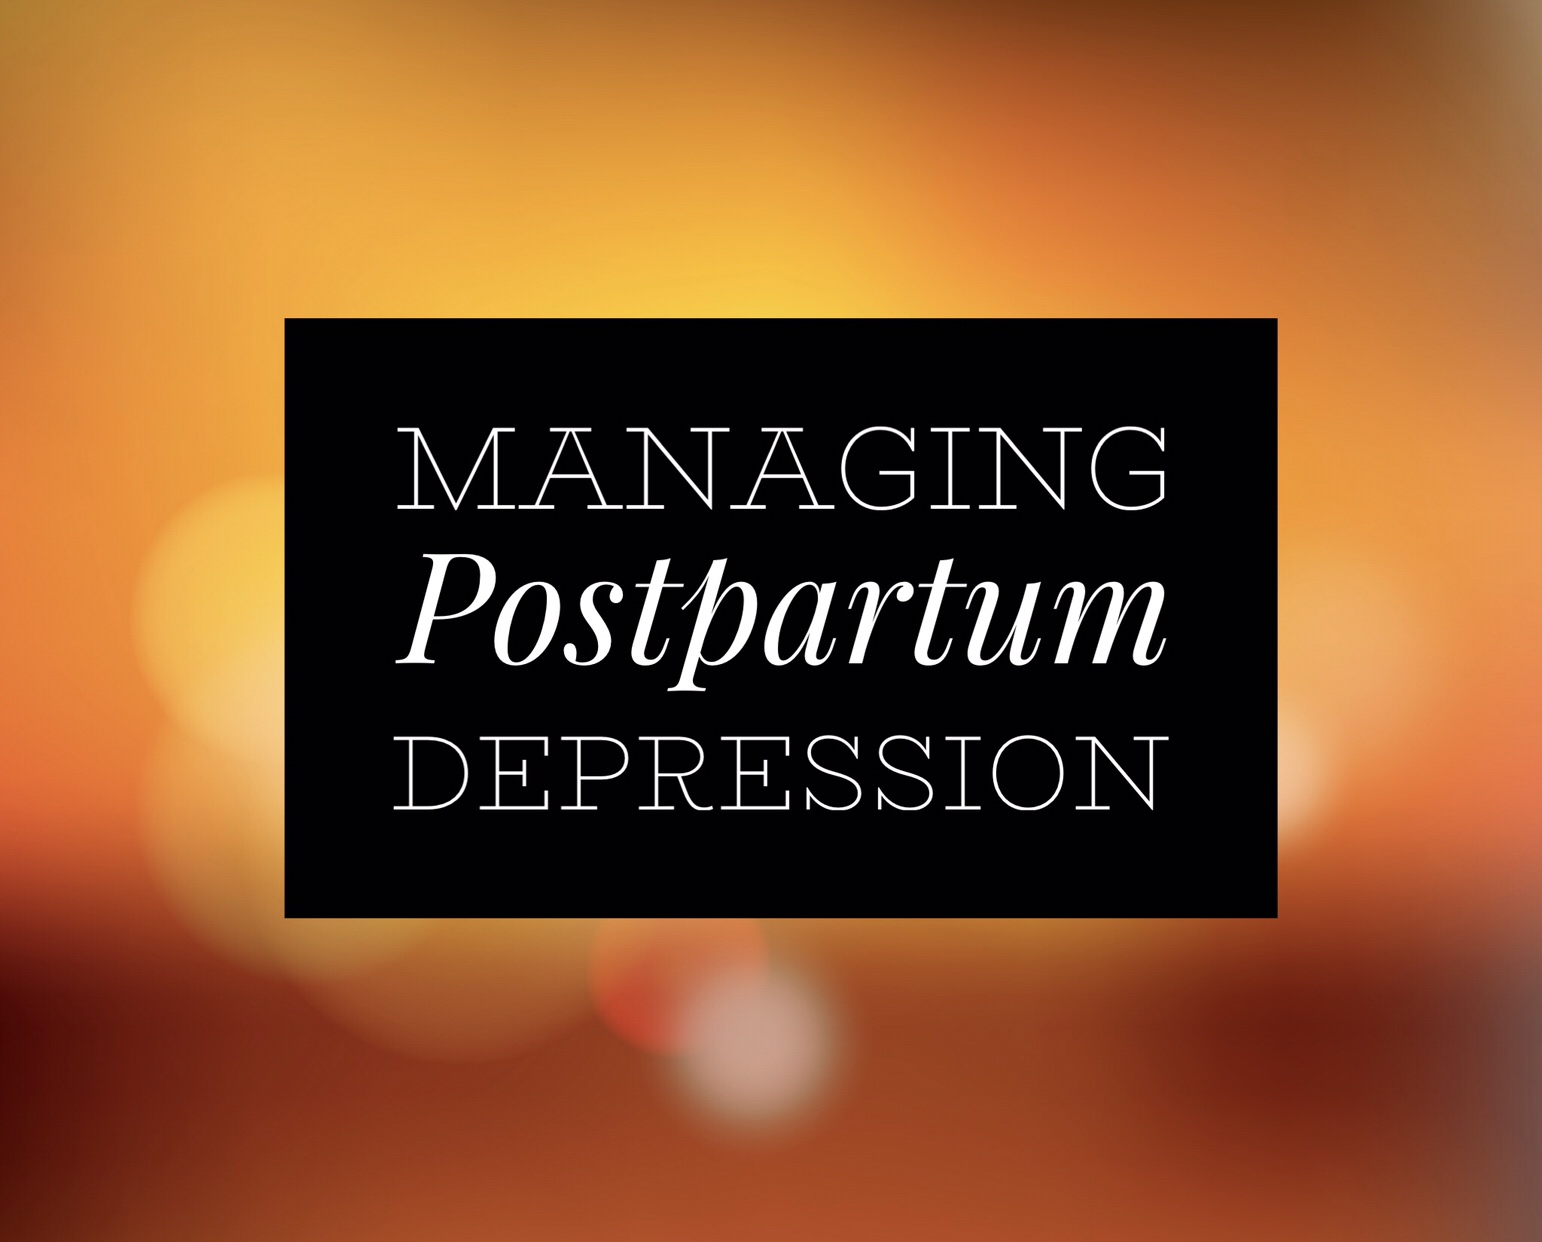 Managing Postpartum Depression